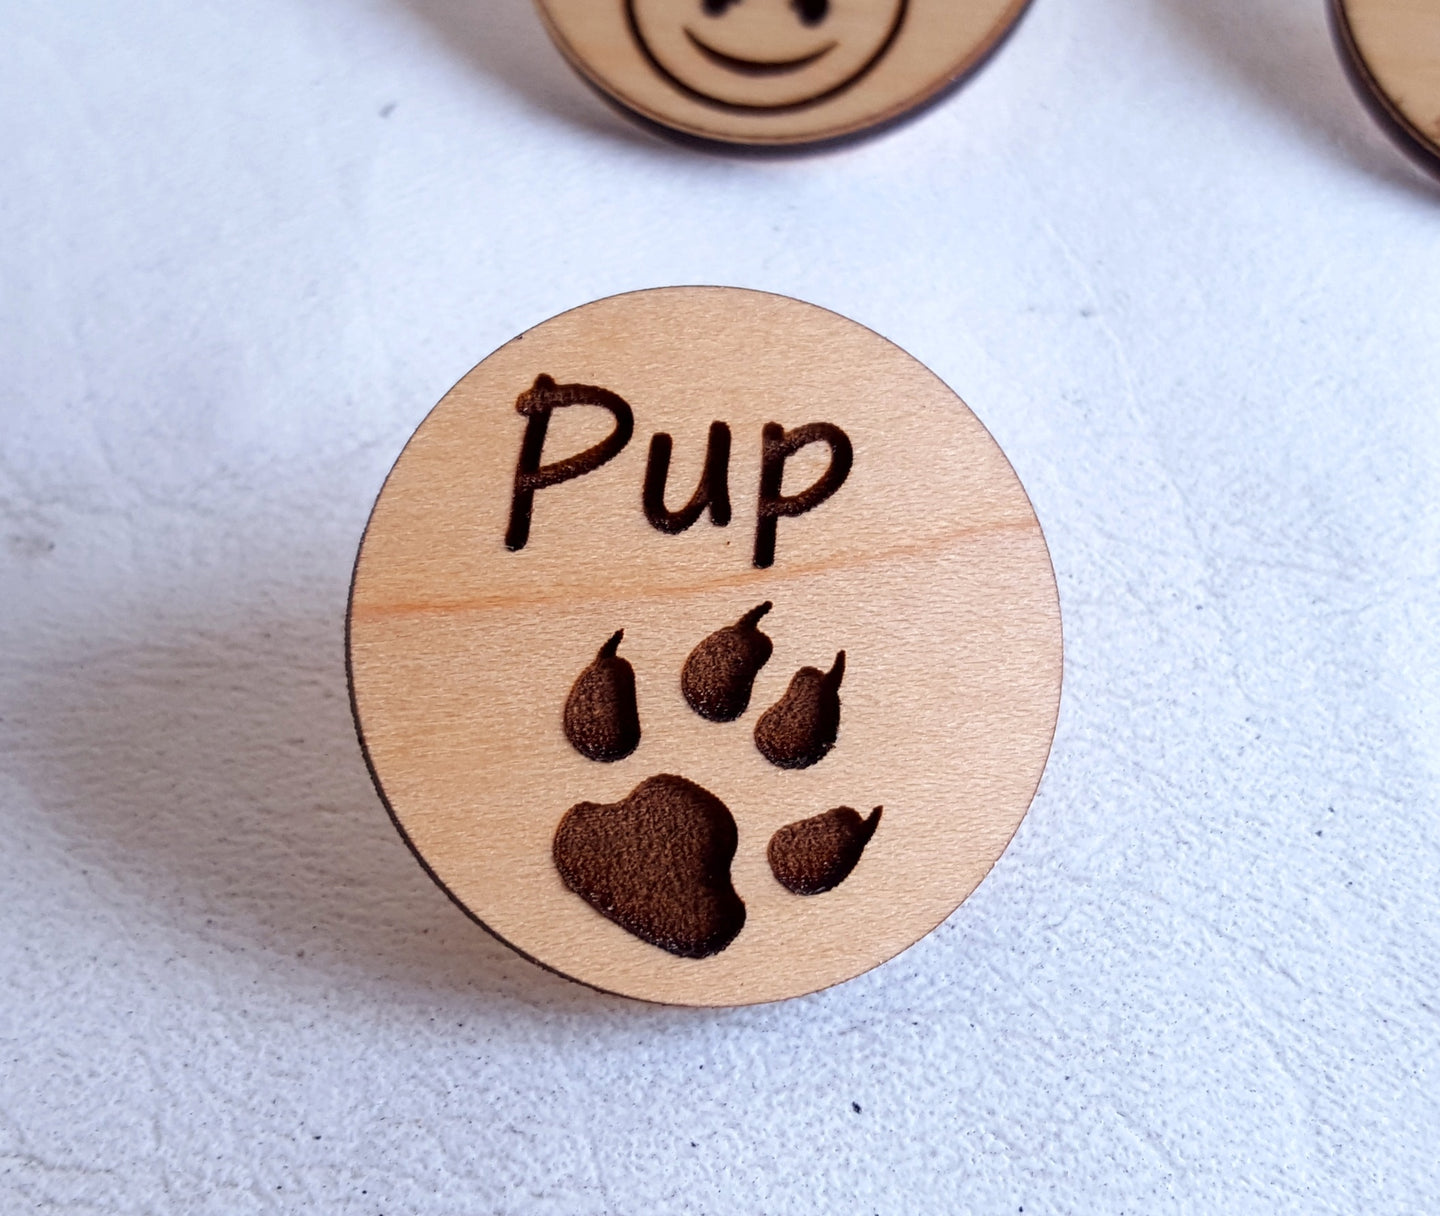 Pup and Pup Handler Pins!